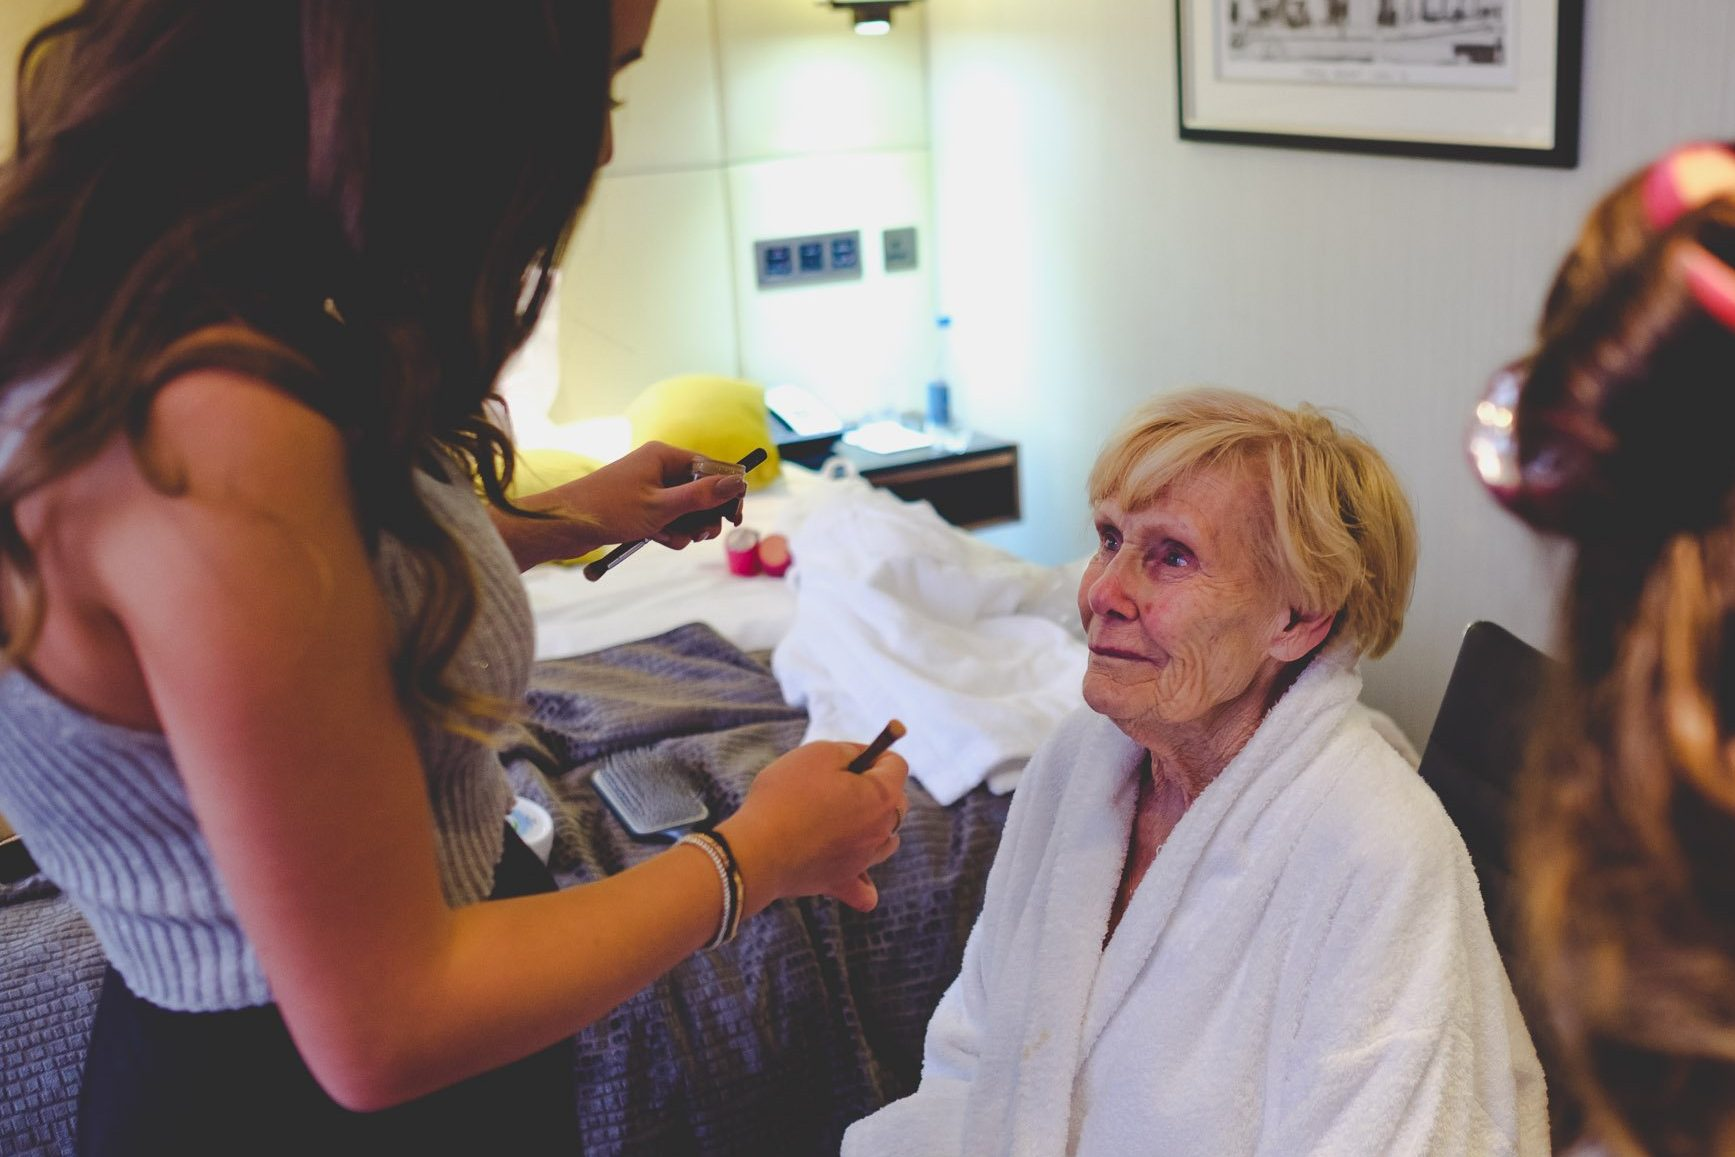 Crying grandma getting ready at The Montcalm Hotel Finsbury Square London. Photography by thatthingyoupluck